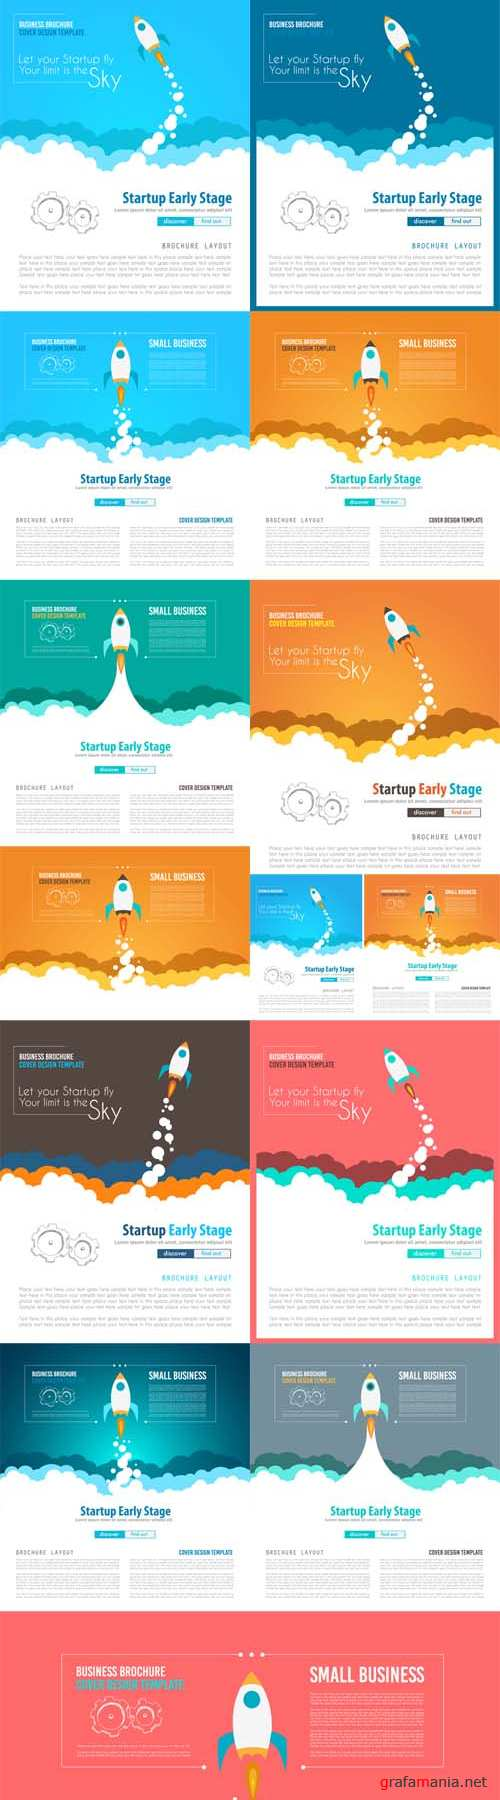 Vector Startup Landing Webpage or Corporate Design Covers